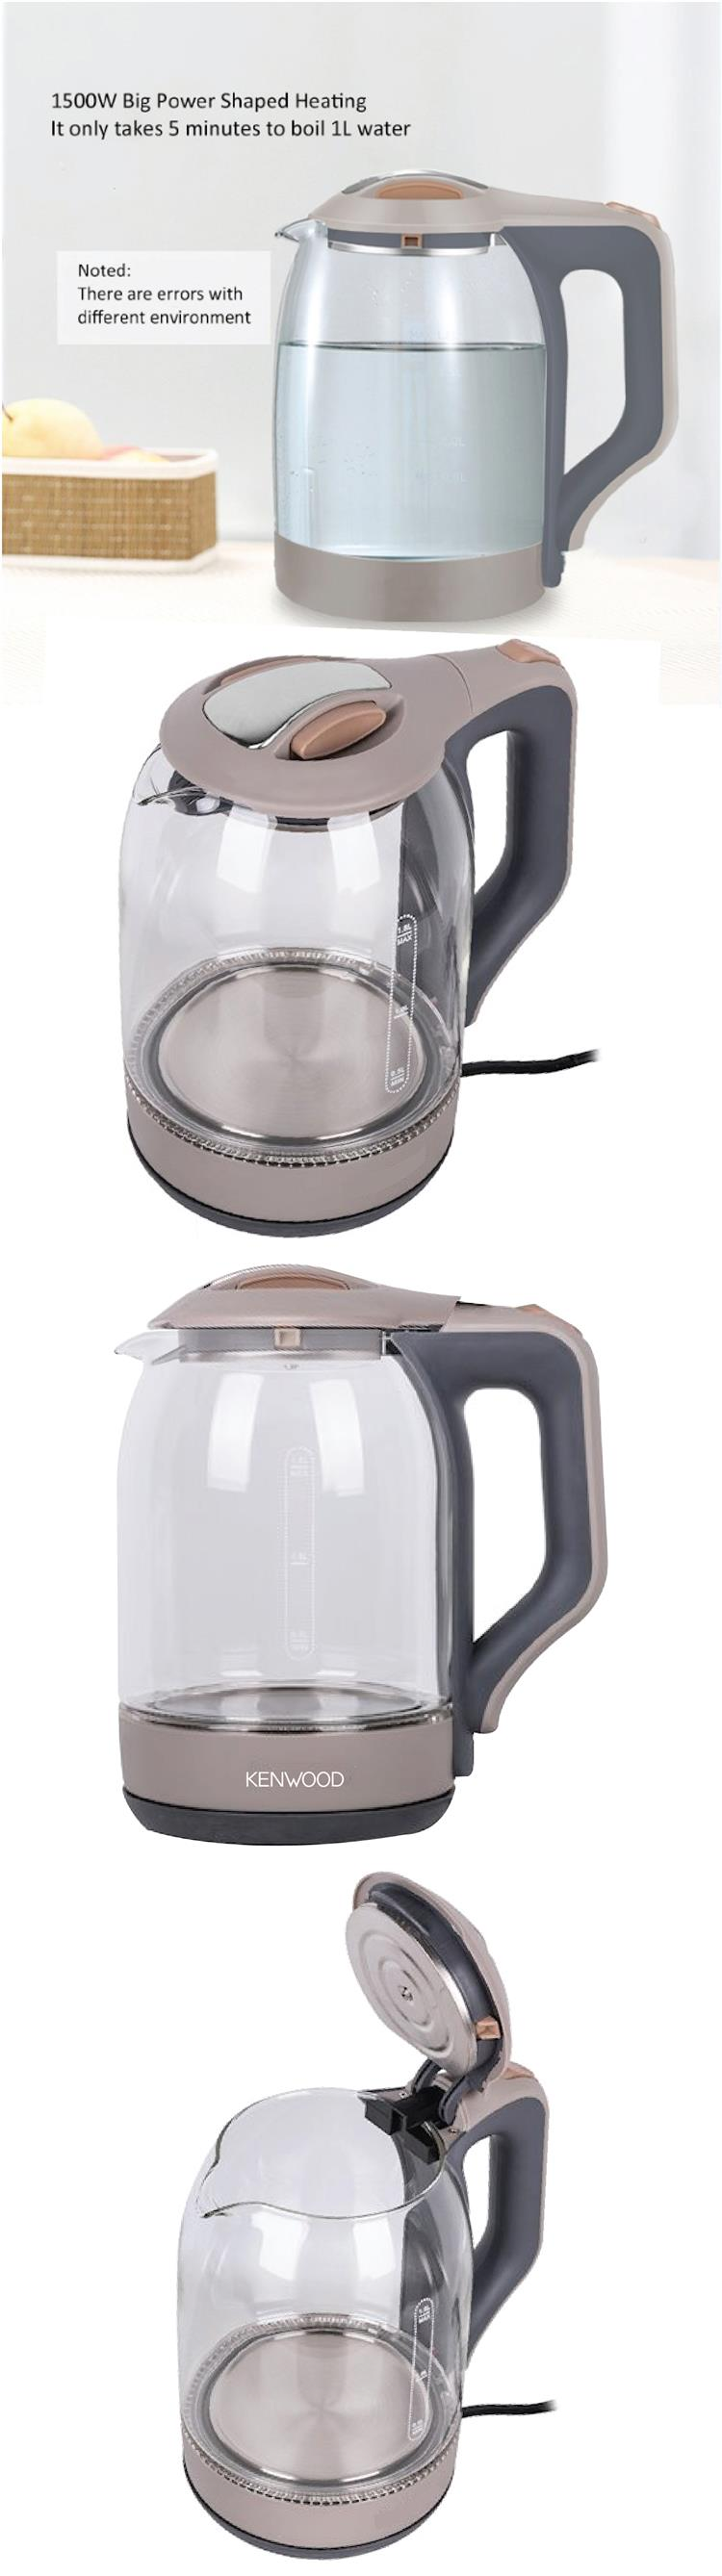 KENWOOD Cordless Electric Glass Jug Kettle LED Light 1850W 2L Home